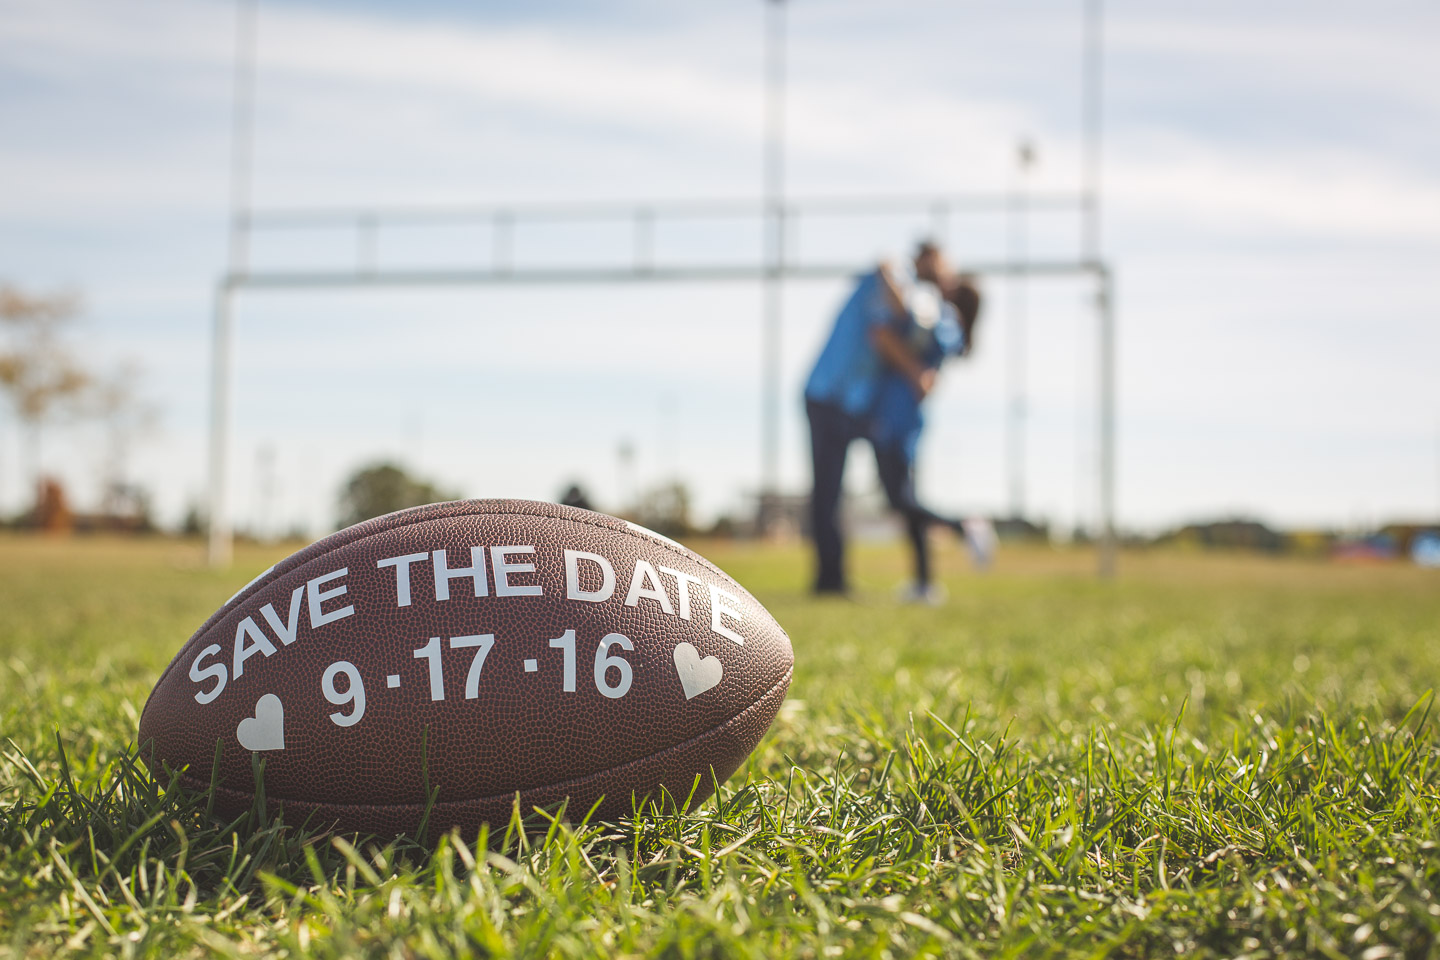 Engagement-Northville-High-School-David-Danielle-Lions-Football-Foreground